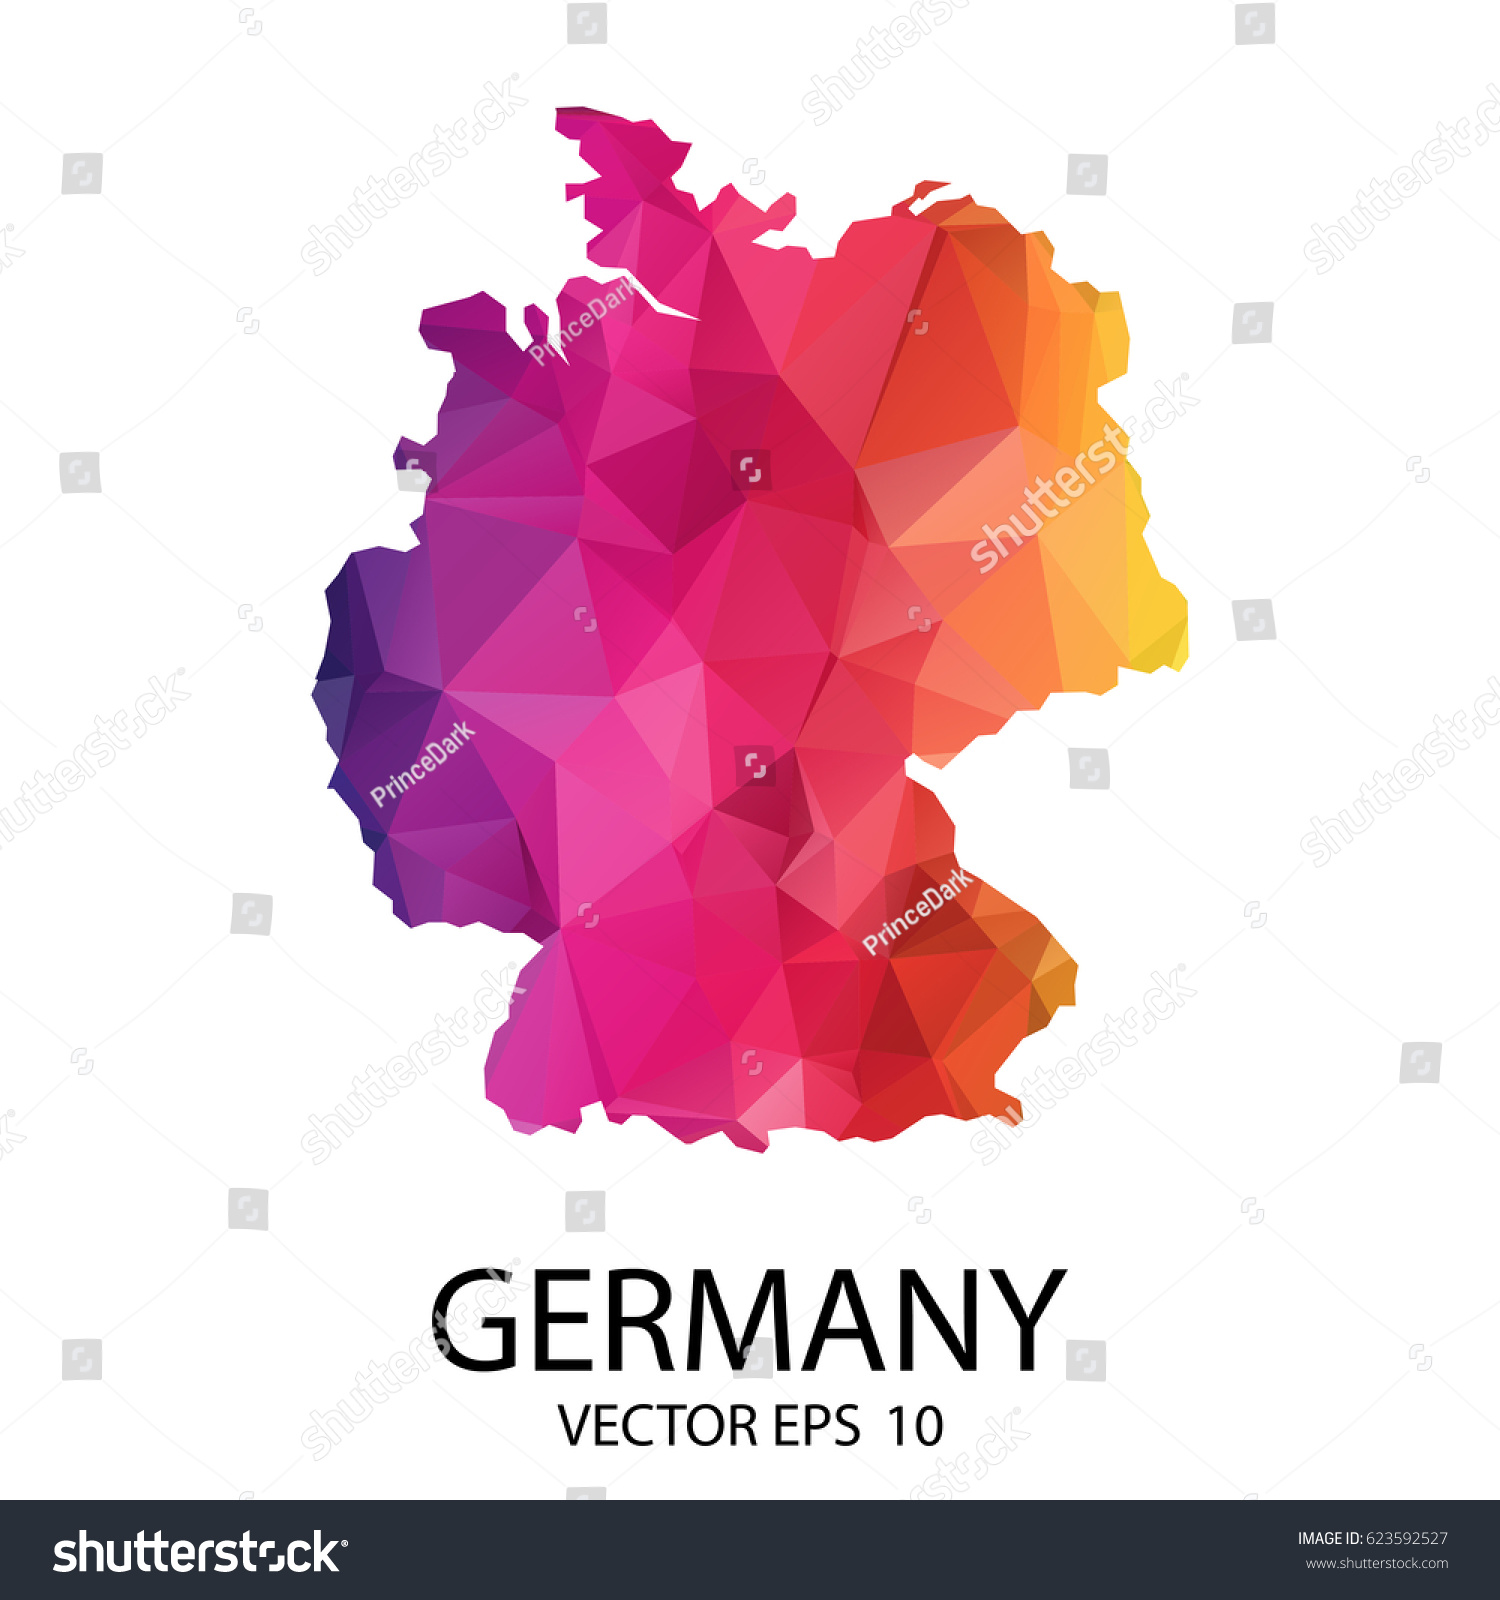 Abstract Polygon Map Vector Illustration Low Stock Vector - Germany map eps